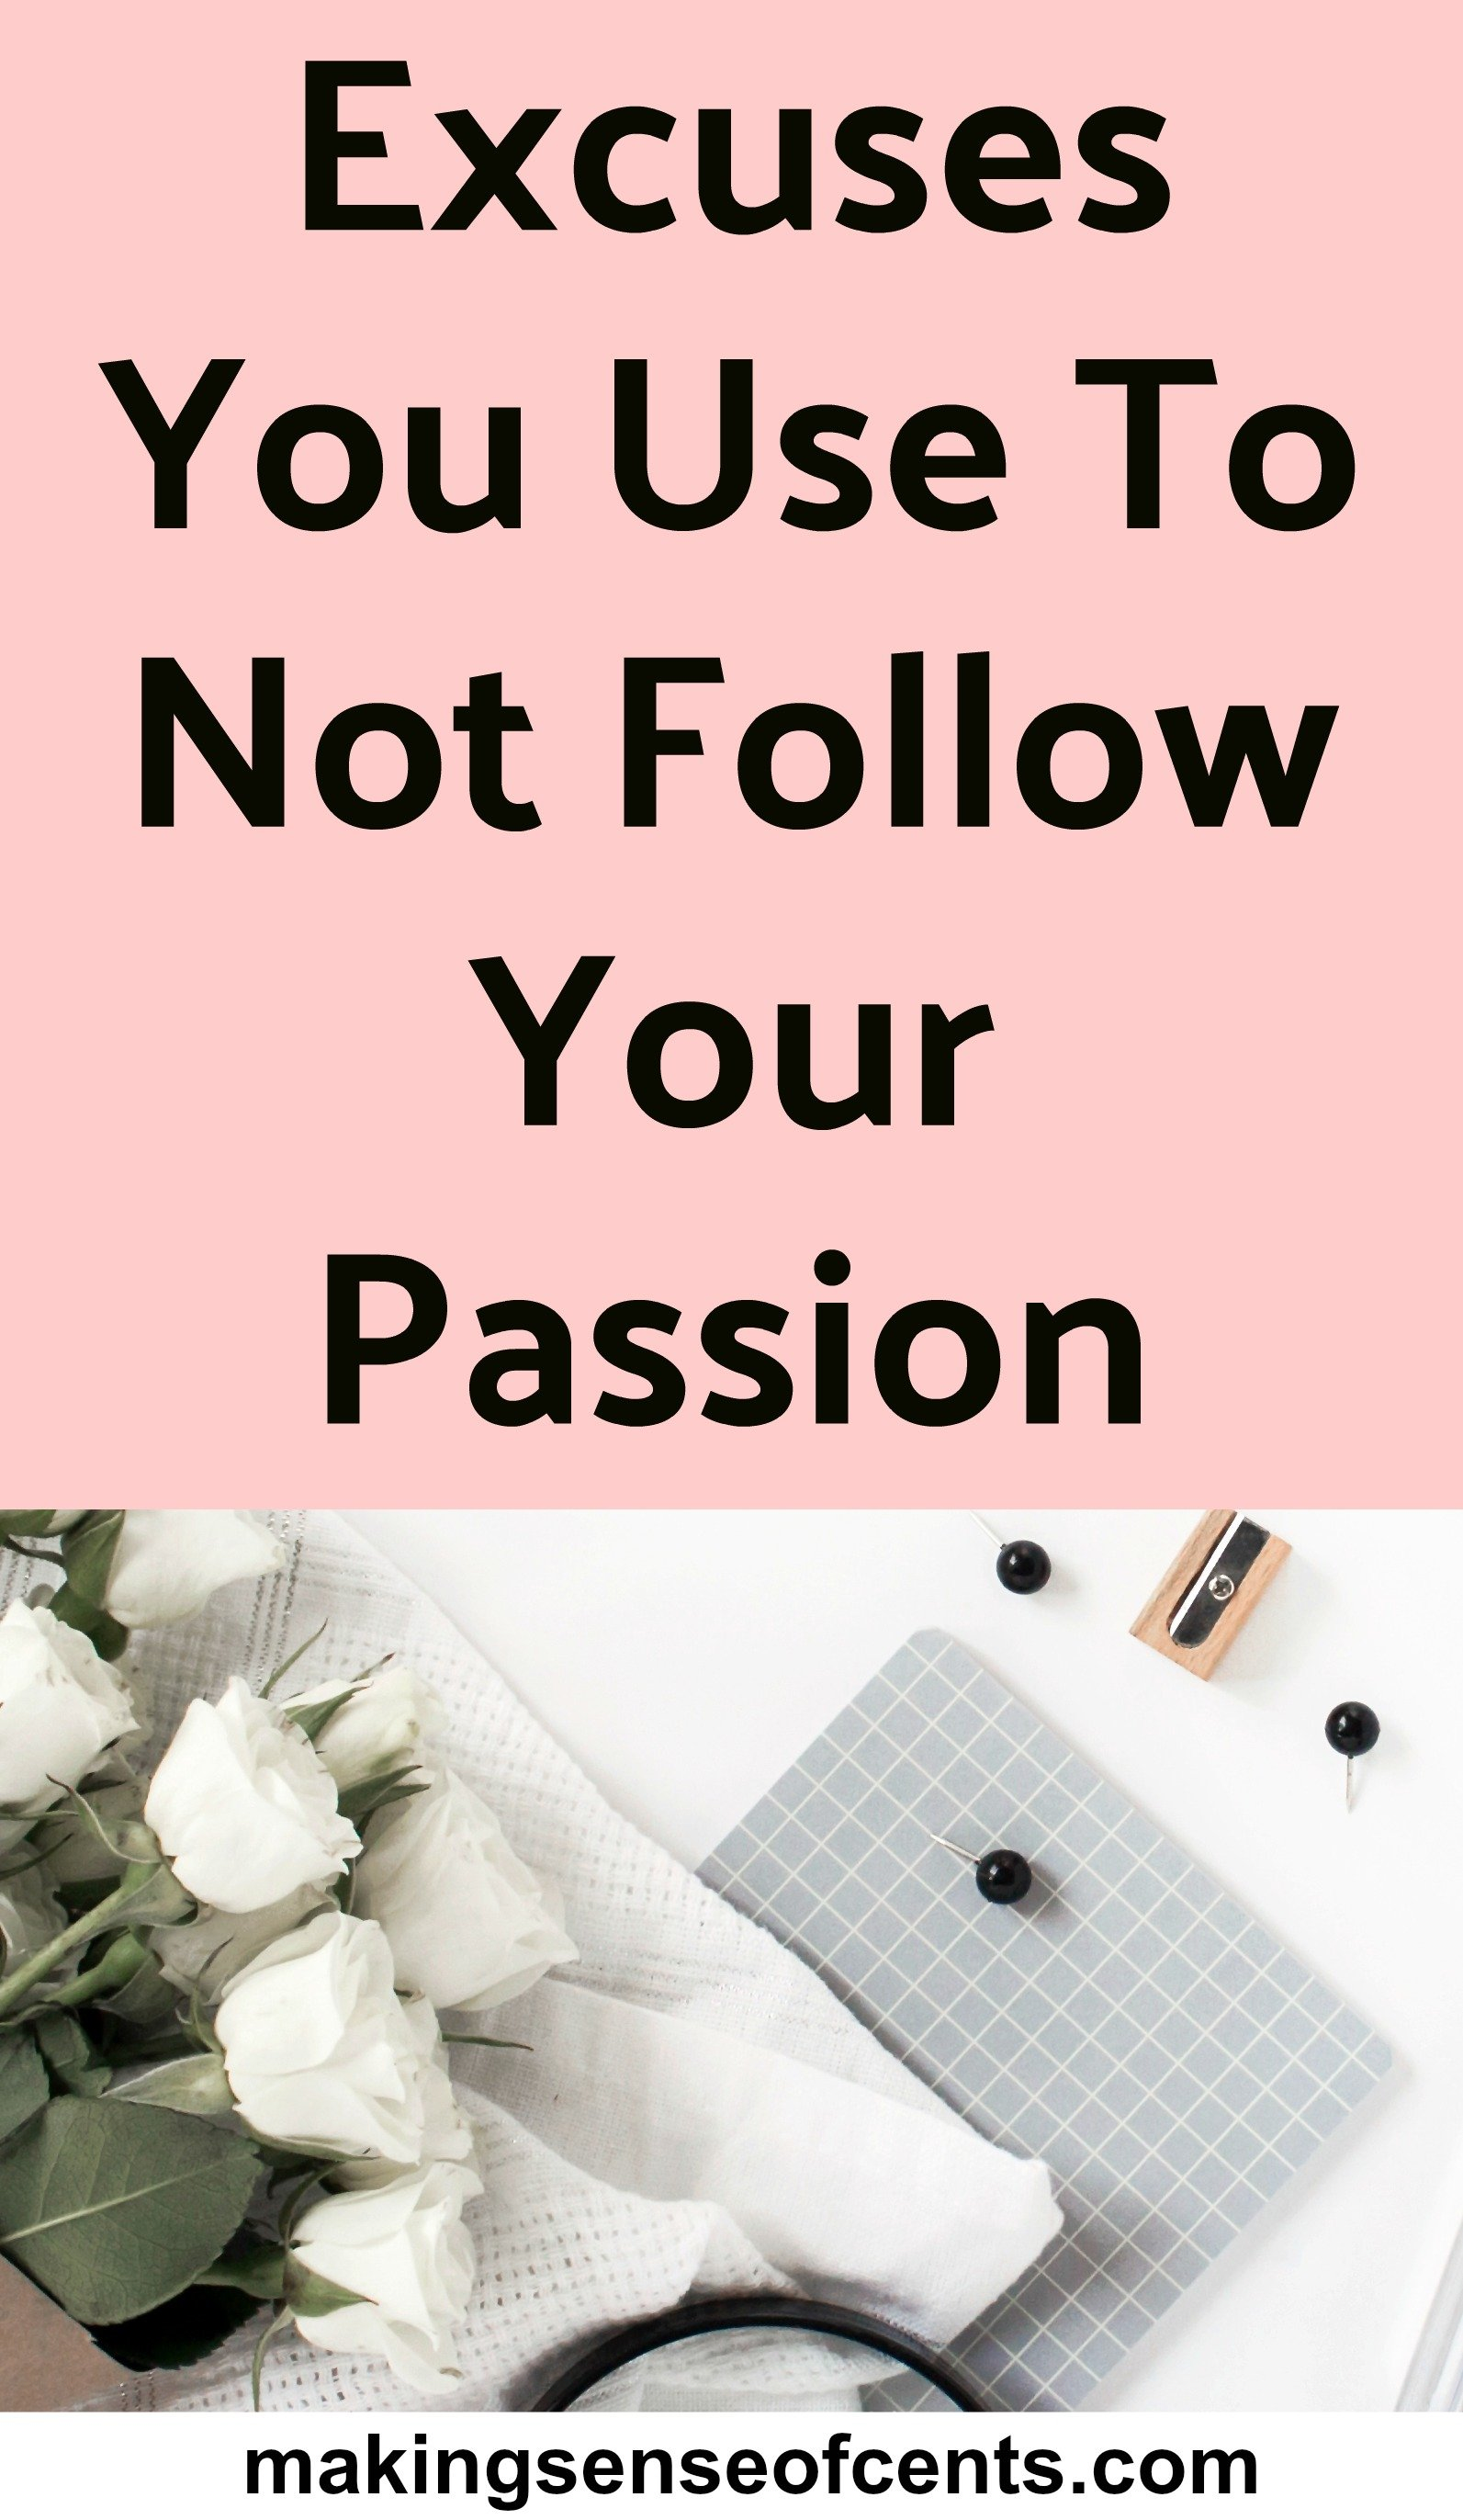 Excuses You Use To Not Follow Your Passion